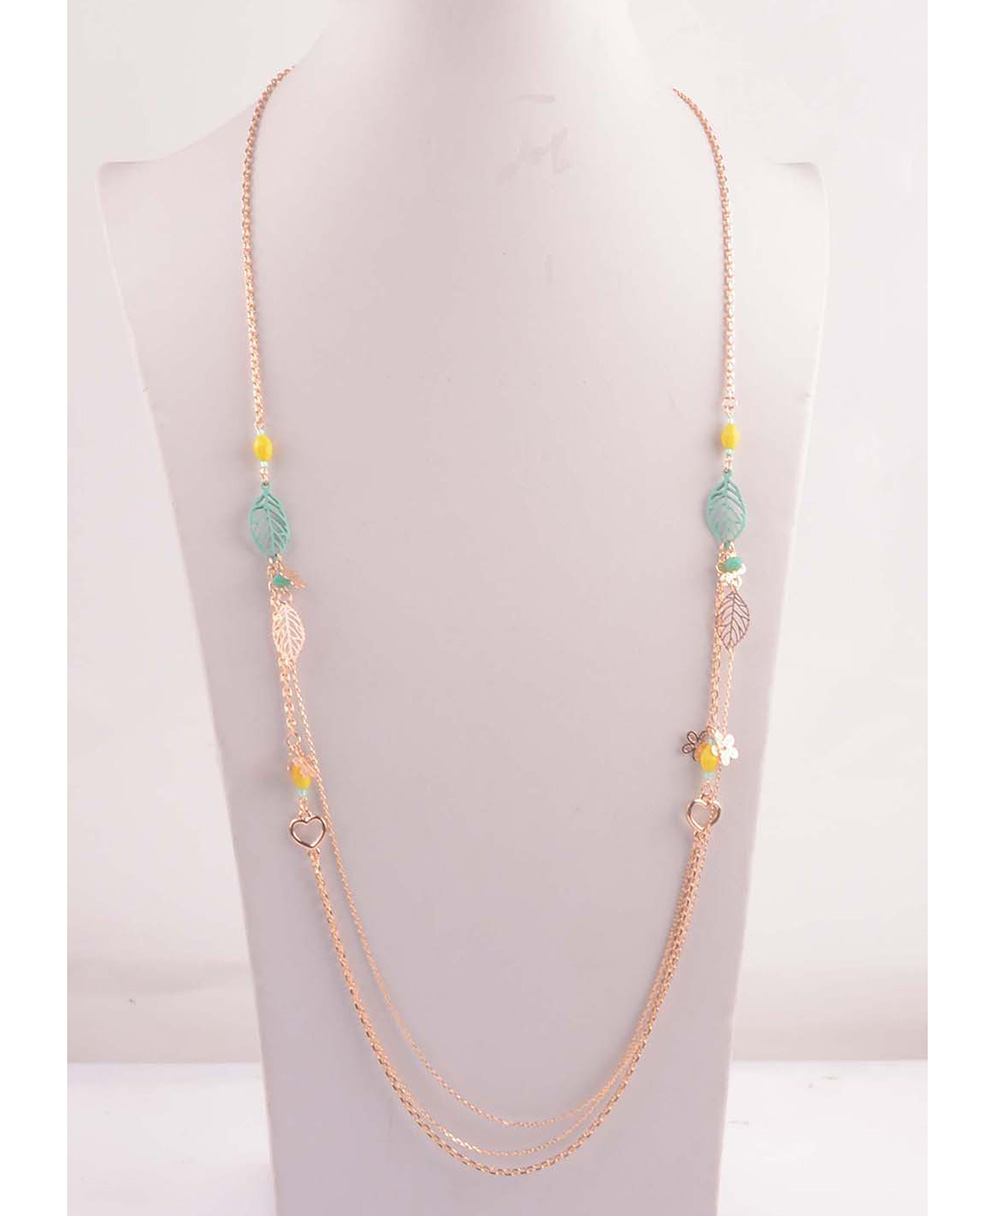 907554 Lady Long Necklace